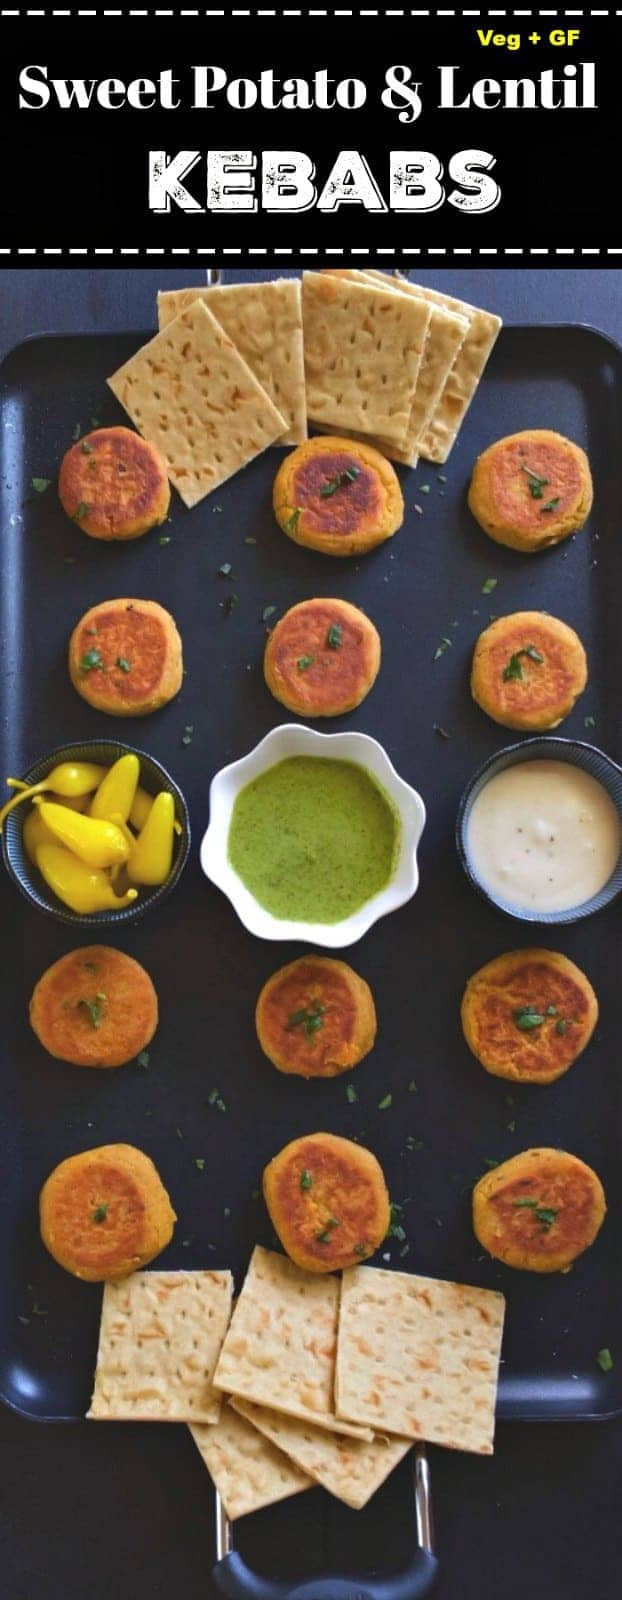 Sweet Potato and Lentil Kebabs: #sweetpotato #sweet #potato #kebabs